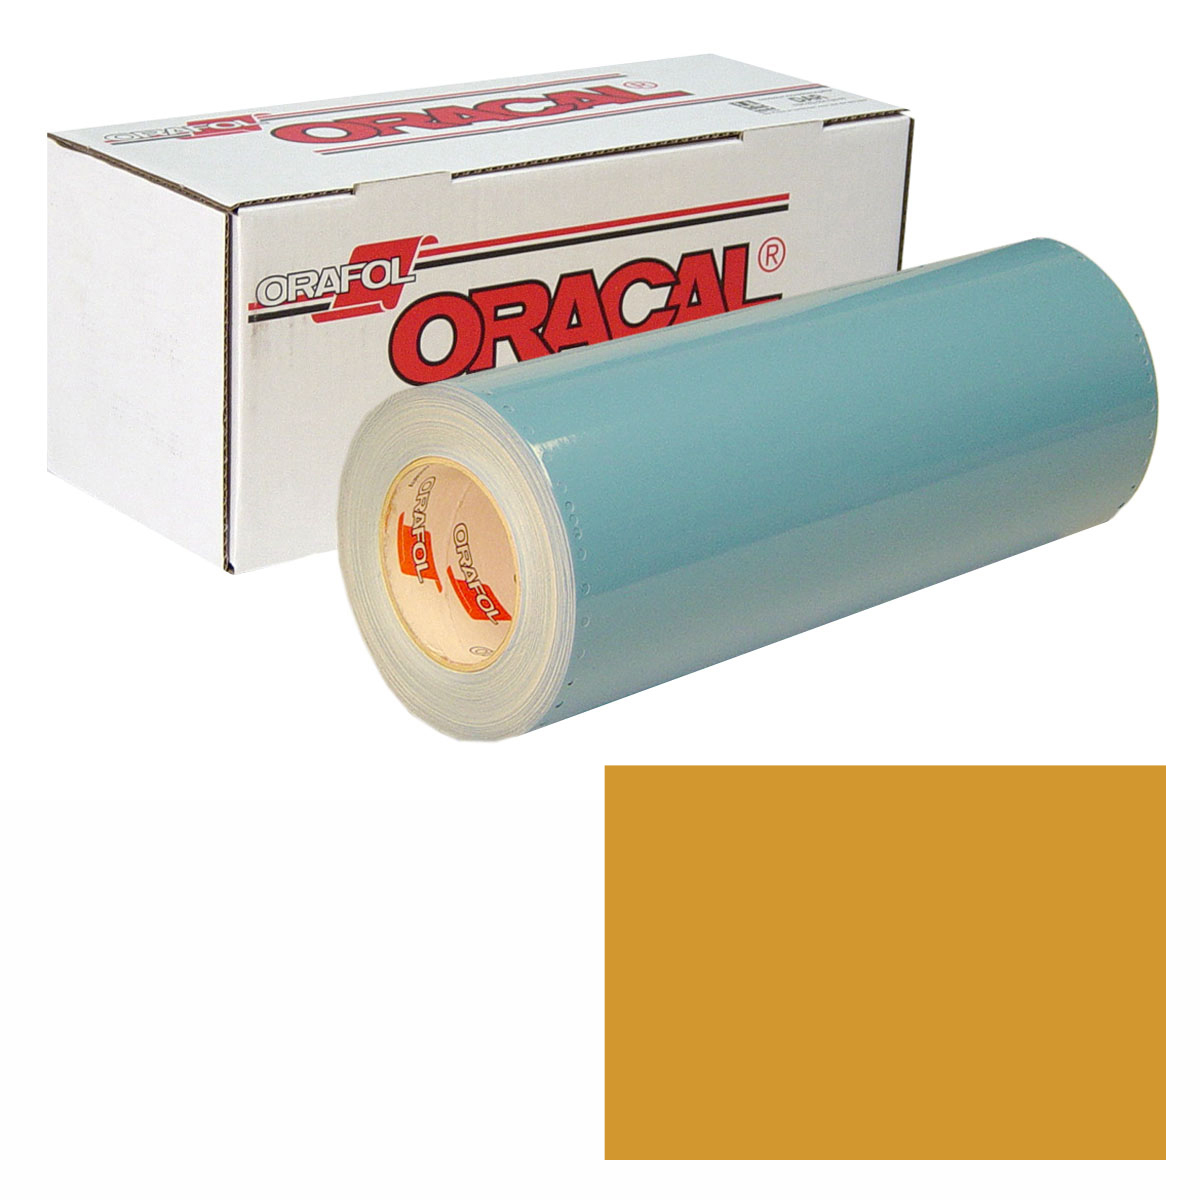 ORACAL 751 Unp 24in X 10yd 065 824 Imitation